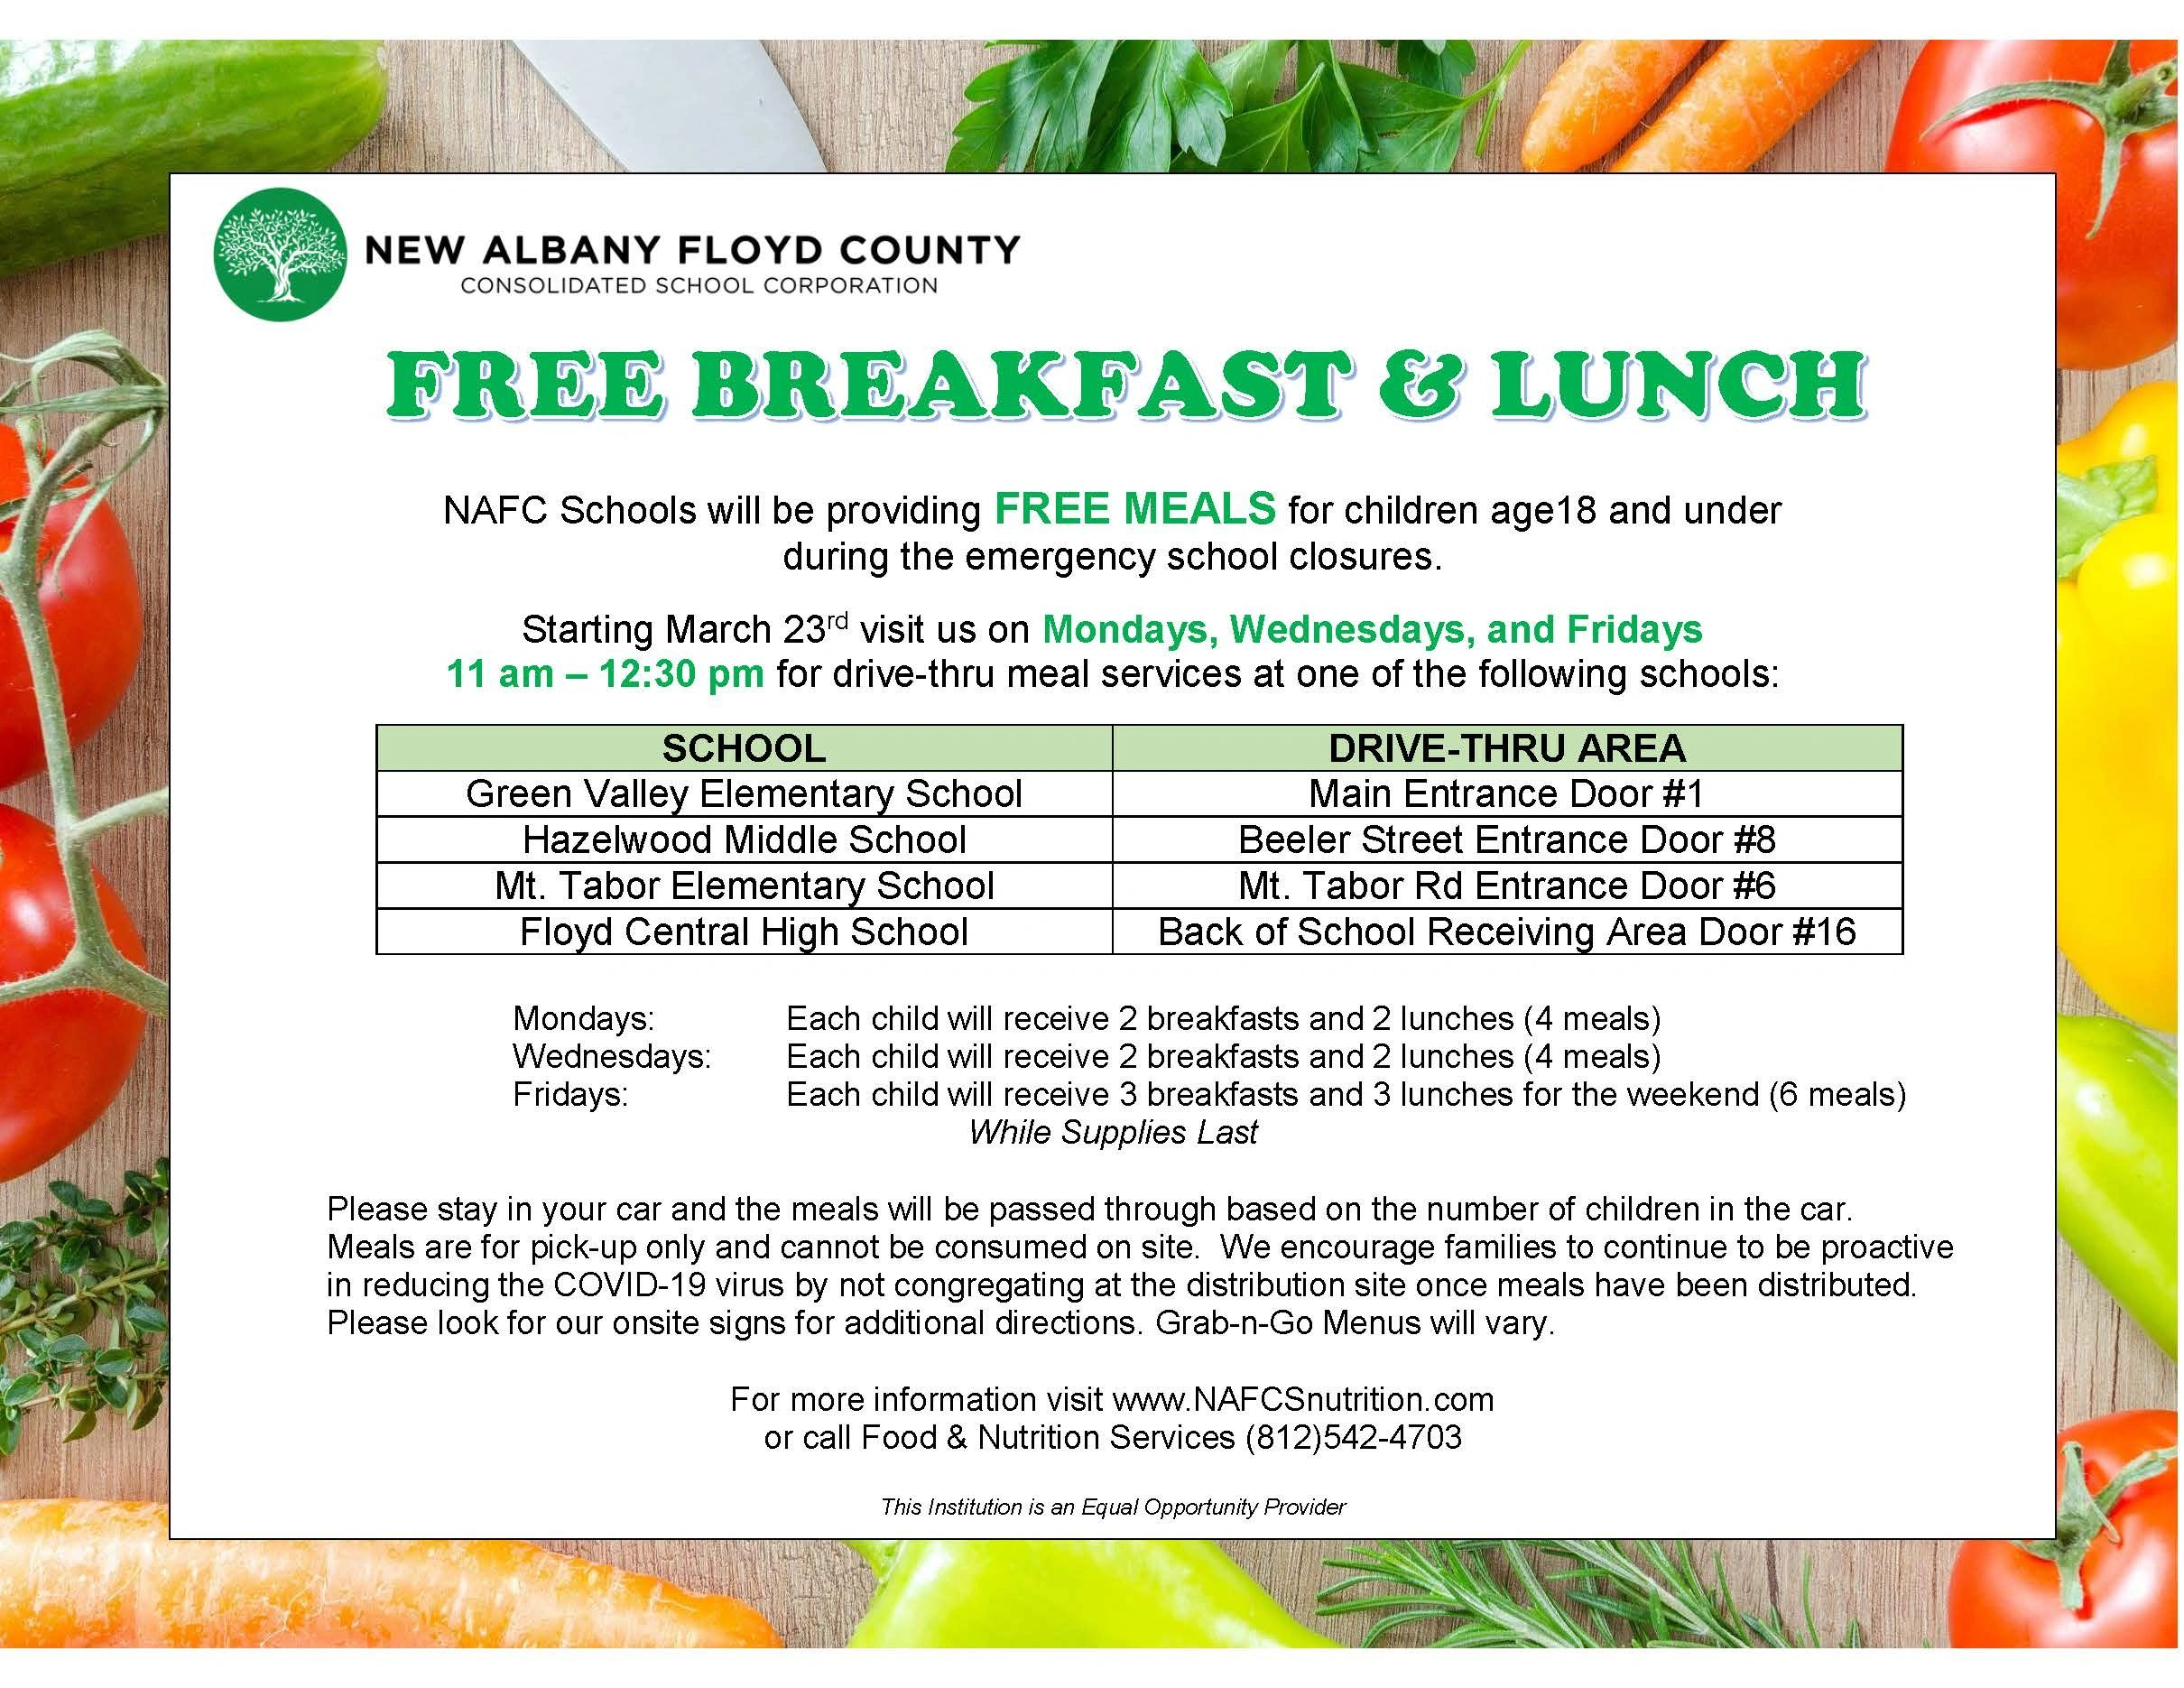 New Albany - Floyd County Schools providing free meals for children 18 and under.